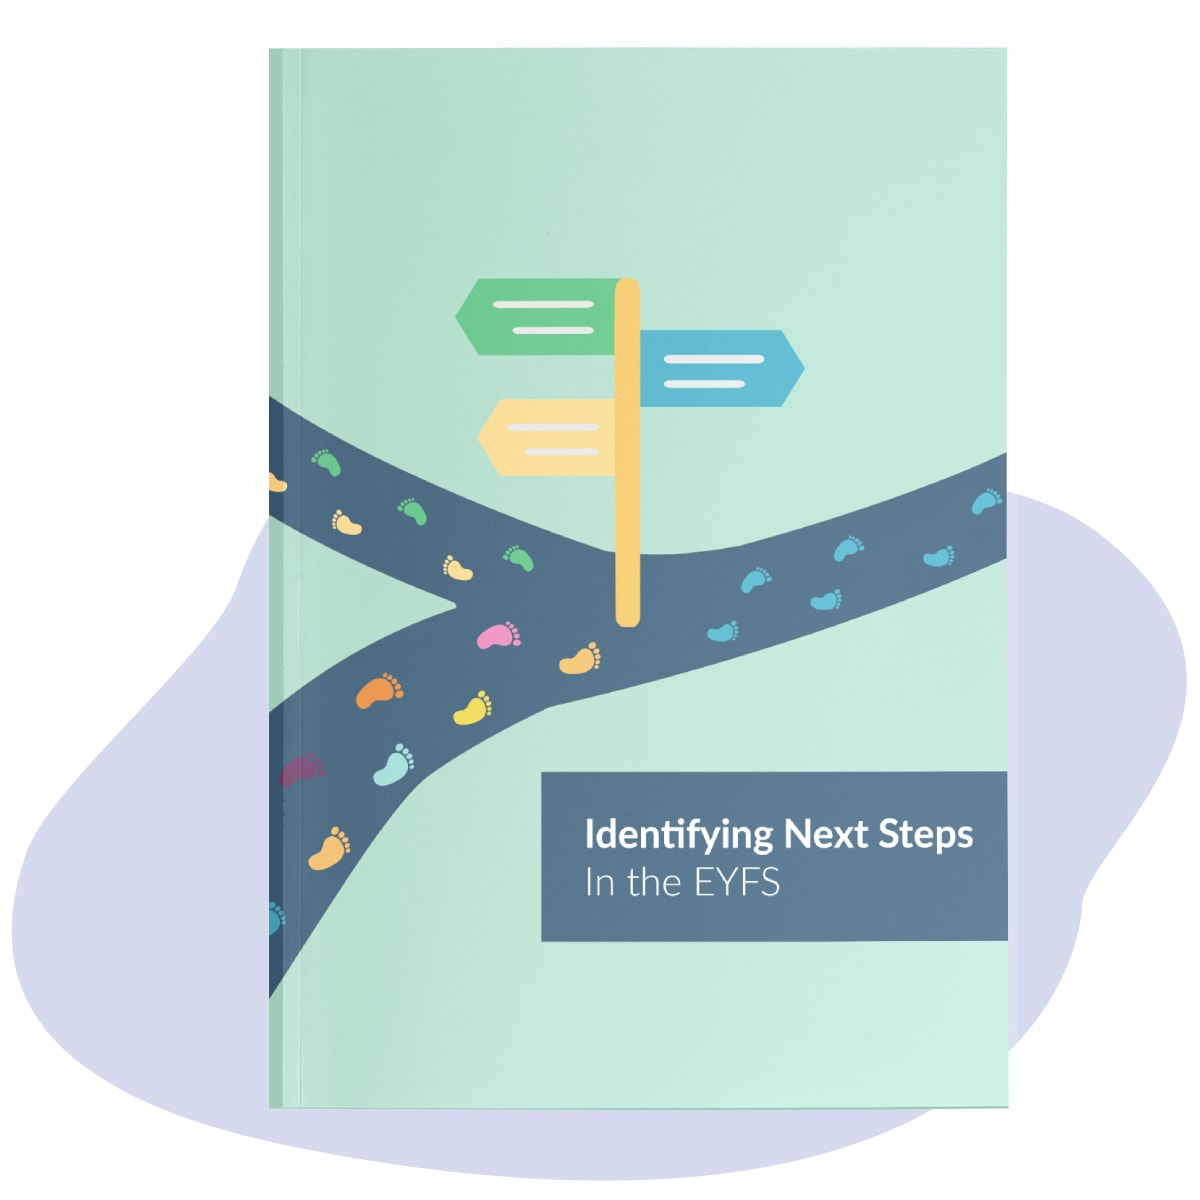 Identifying Next Steps in the EYFS